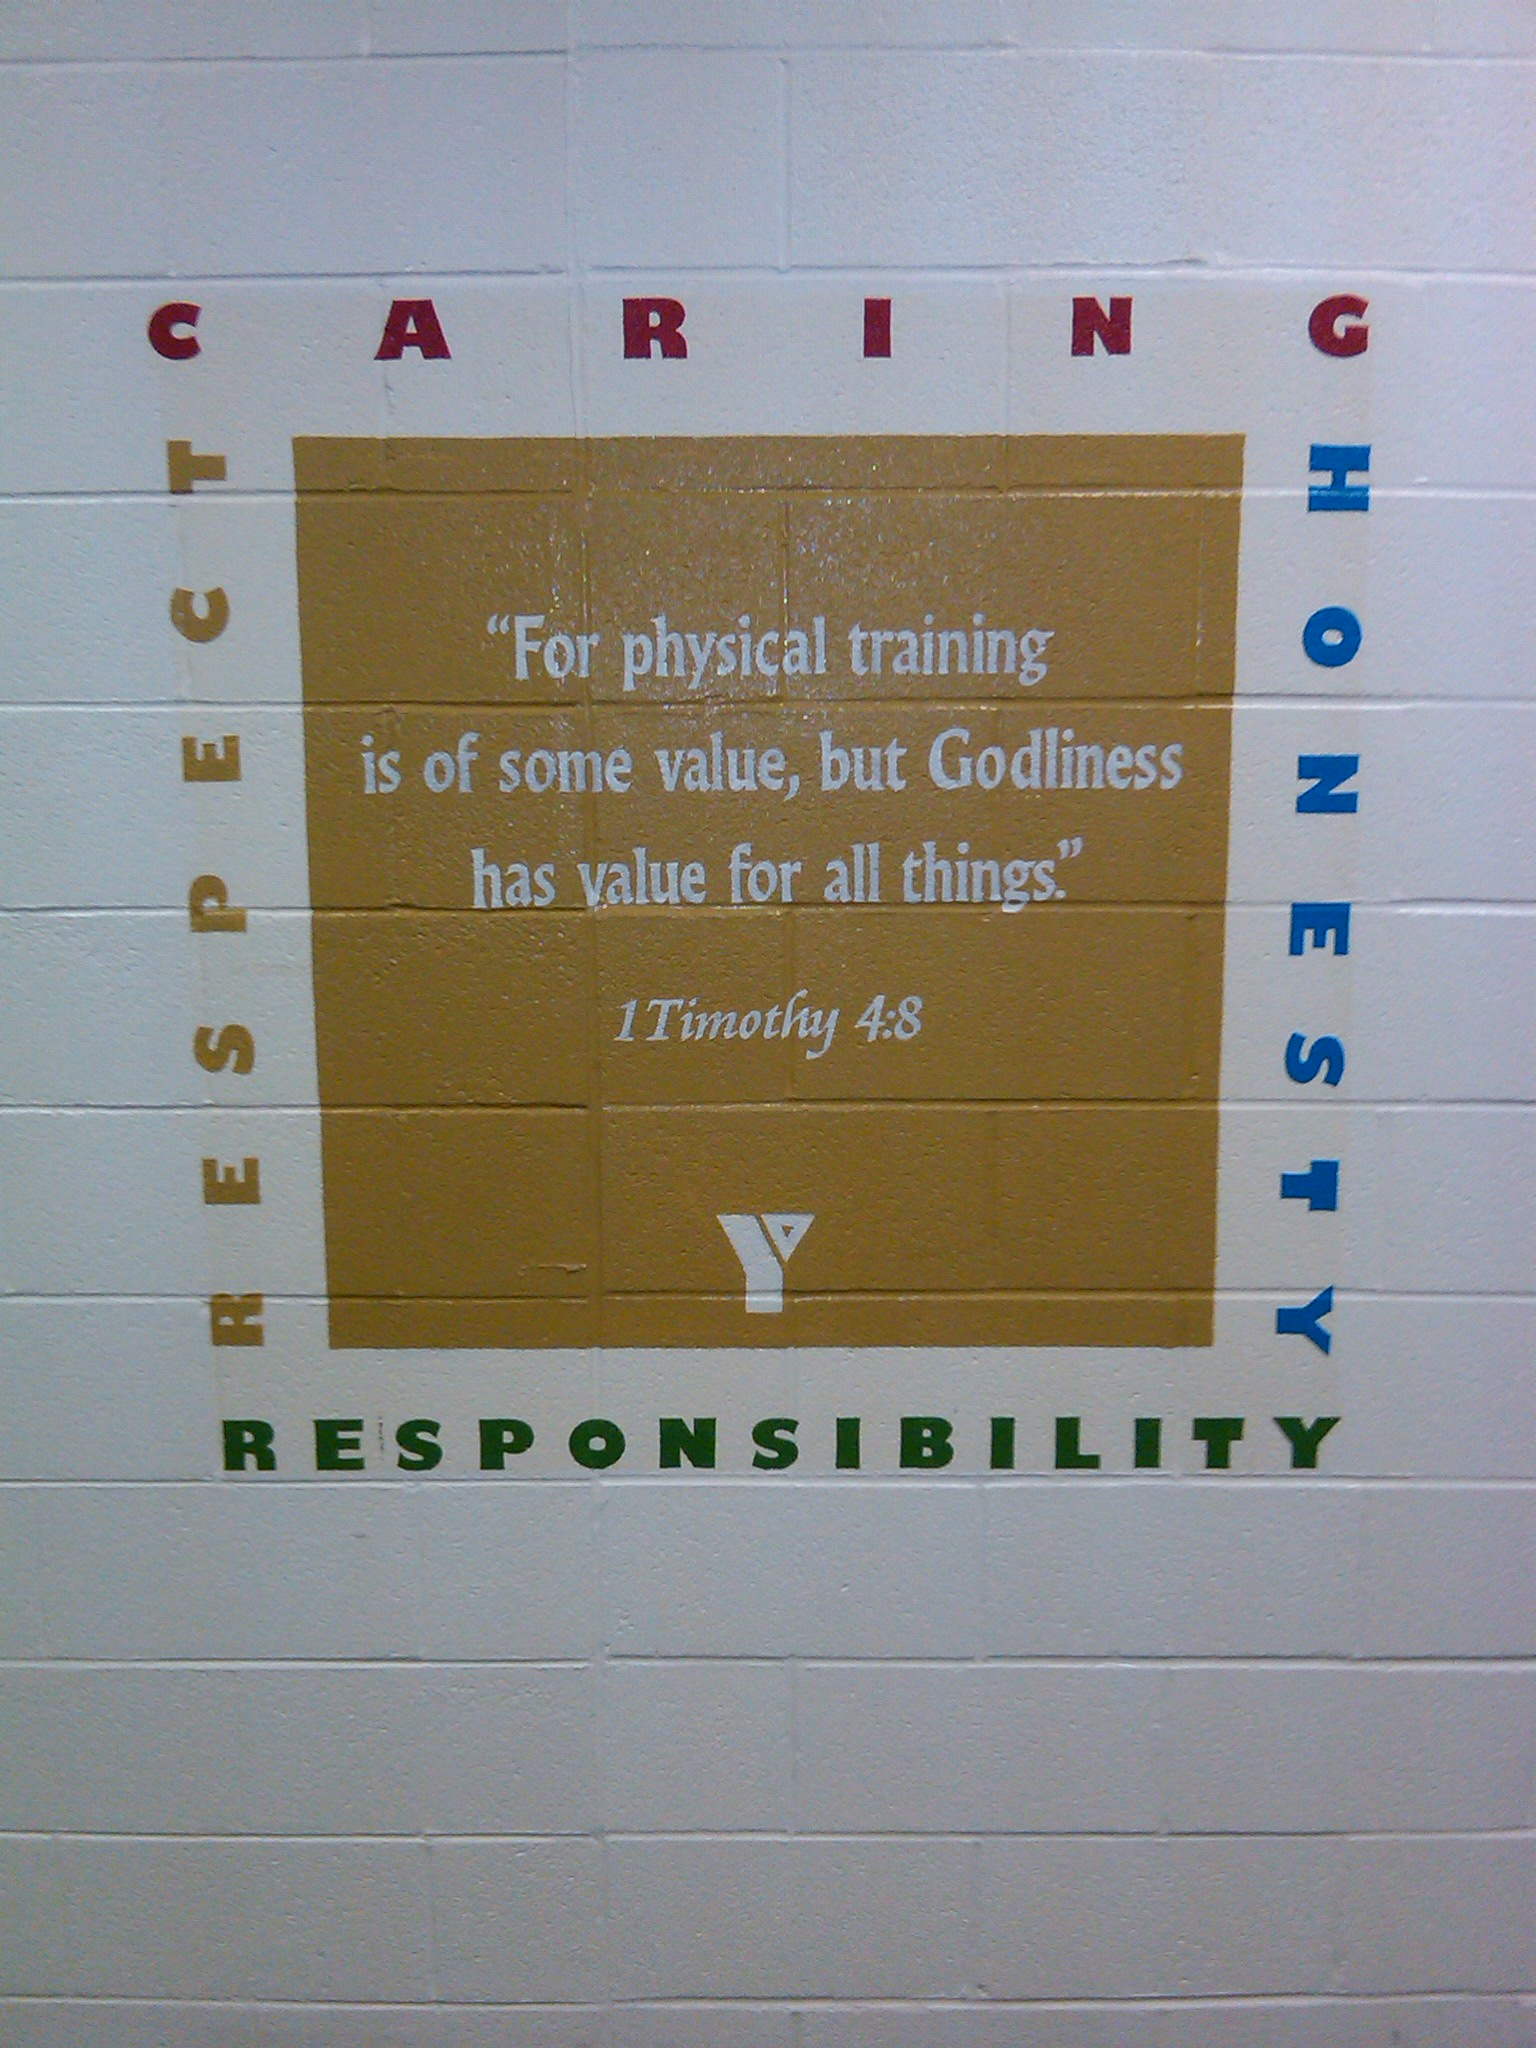 the core values are painted onto a wall of a fitness centre in a ymca along with a bible verse as well as the logo of the ymca